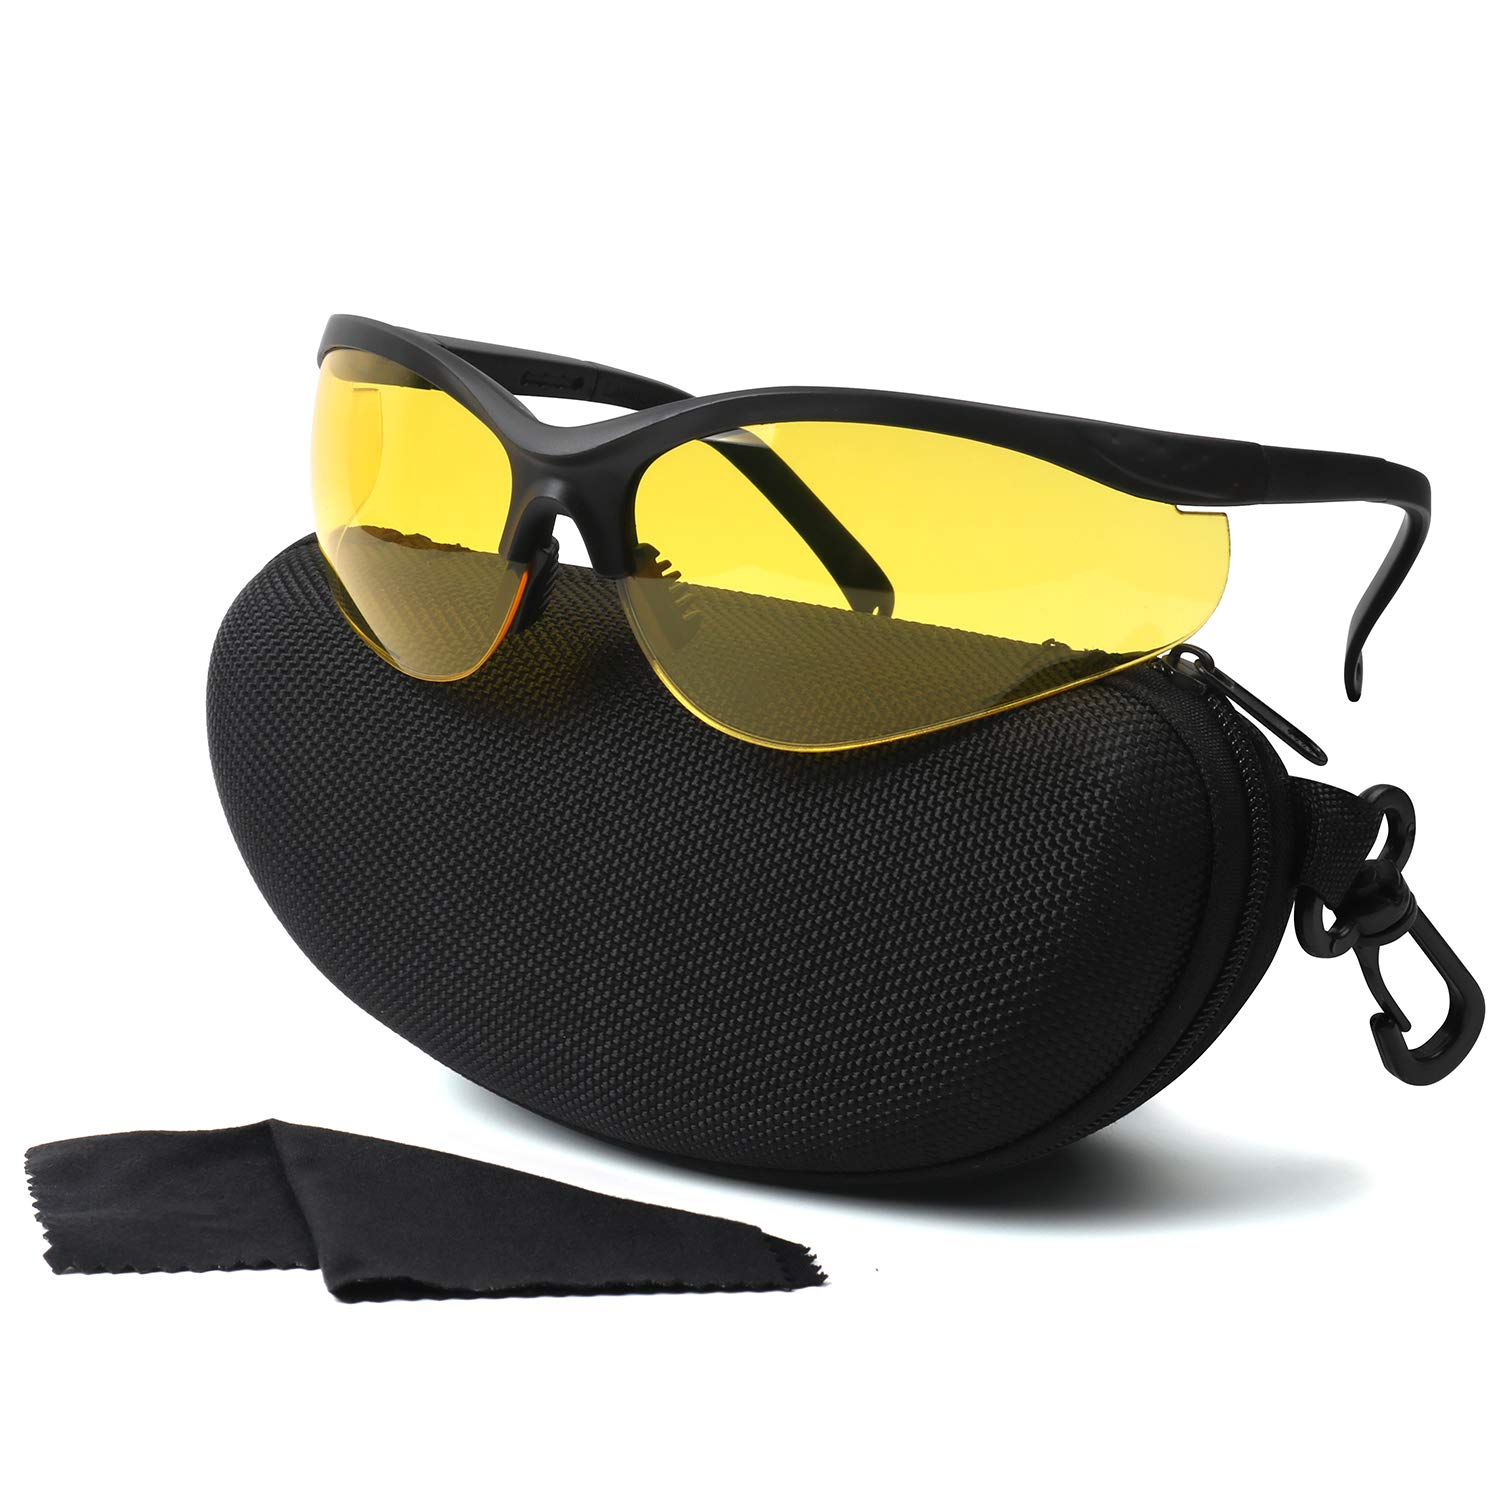 LaneTop Shooting Glasses for Men and Women, Anti Fog ANSI Z87.1 Safety Glasses with Hard Shell Case, UV400 Eye Protection for Shooting Range Glasses, Yellow Lens by LaneTop